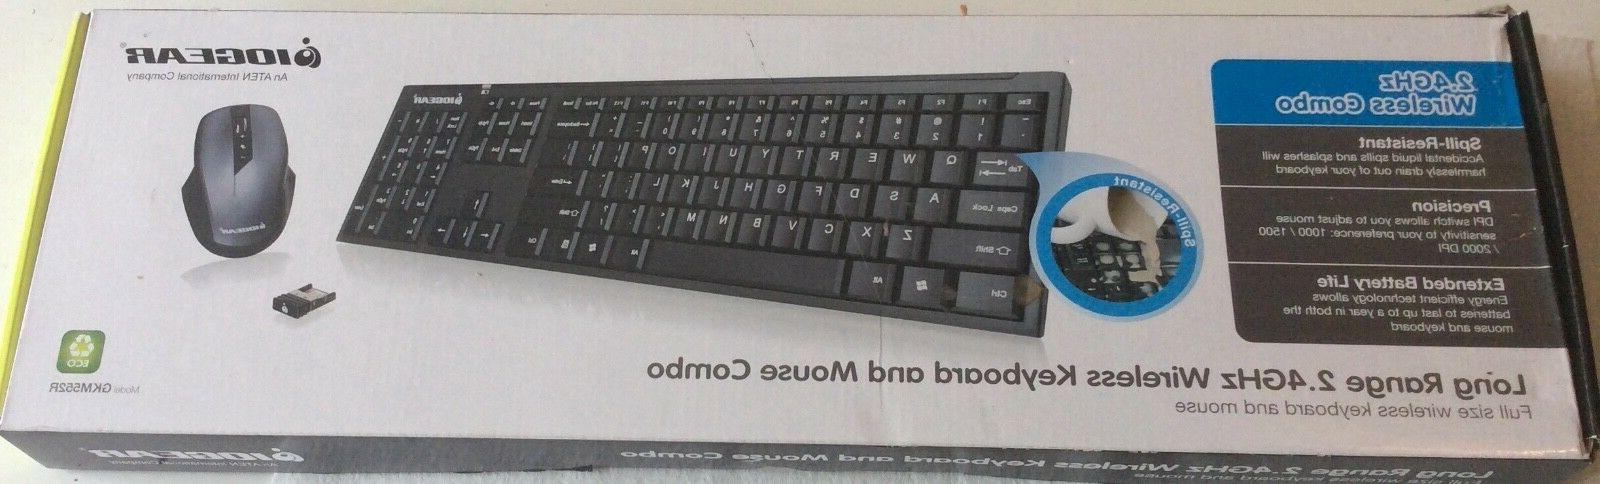 IOGEAR Long Range 2.4 GHz Wireless Keyboard and Mouse Combo,